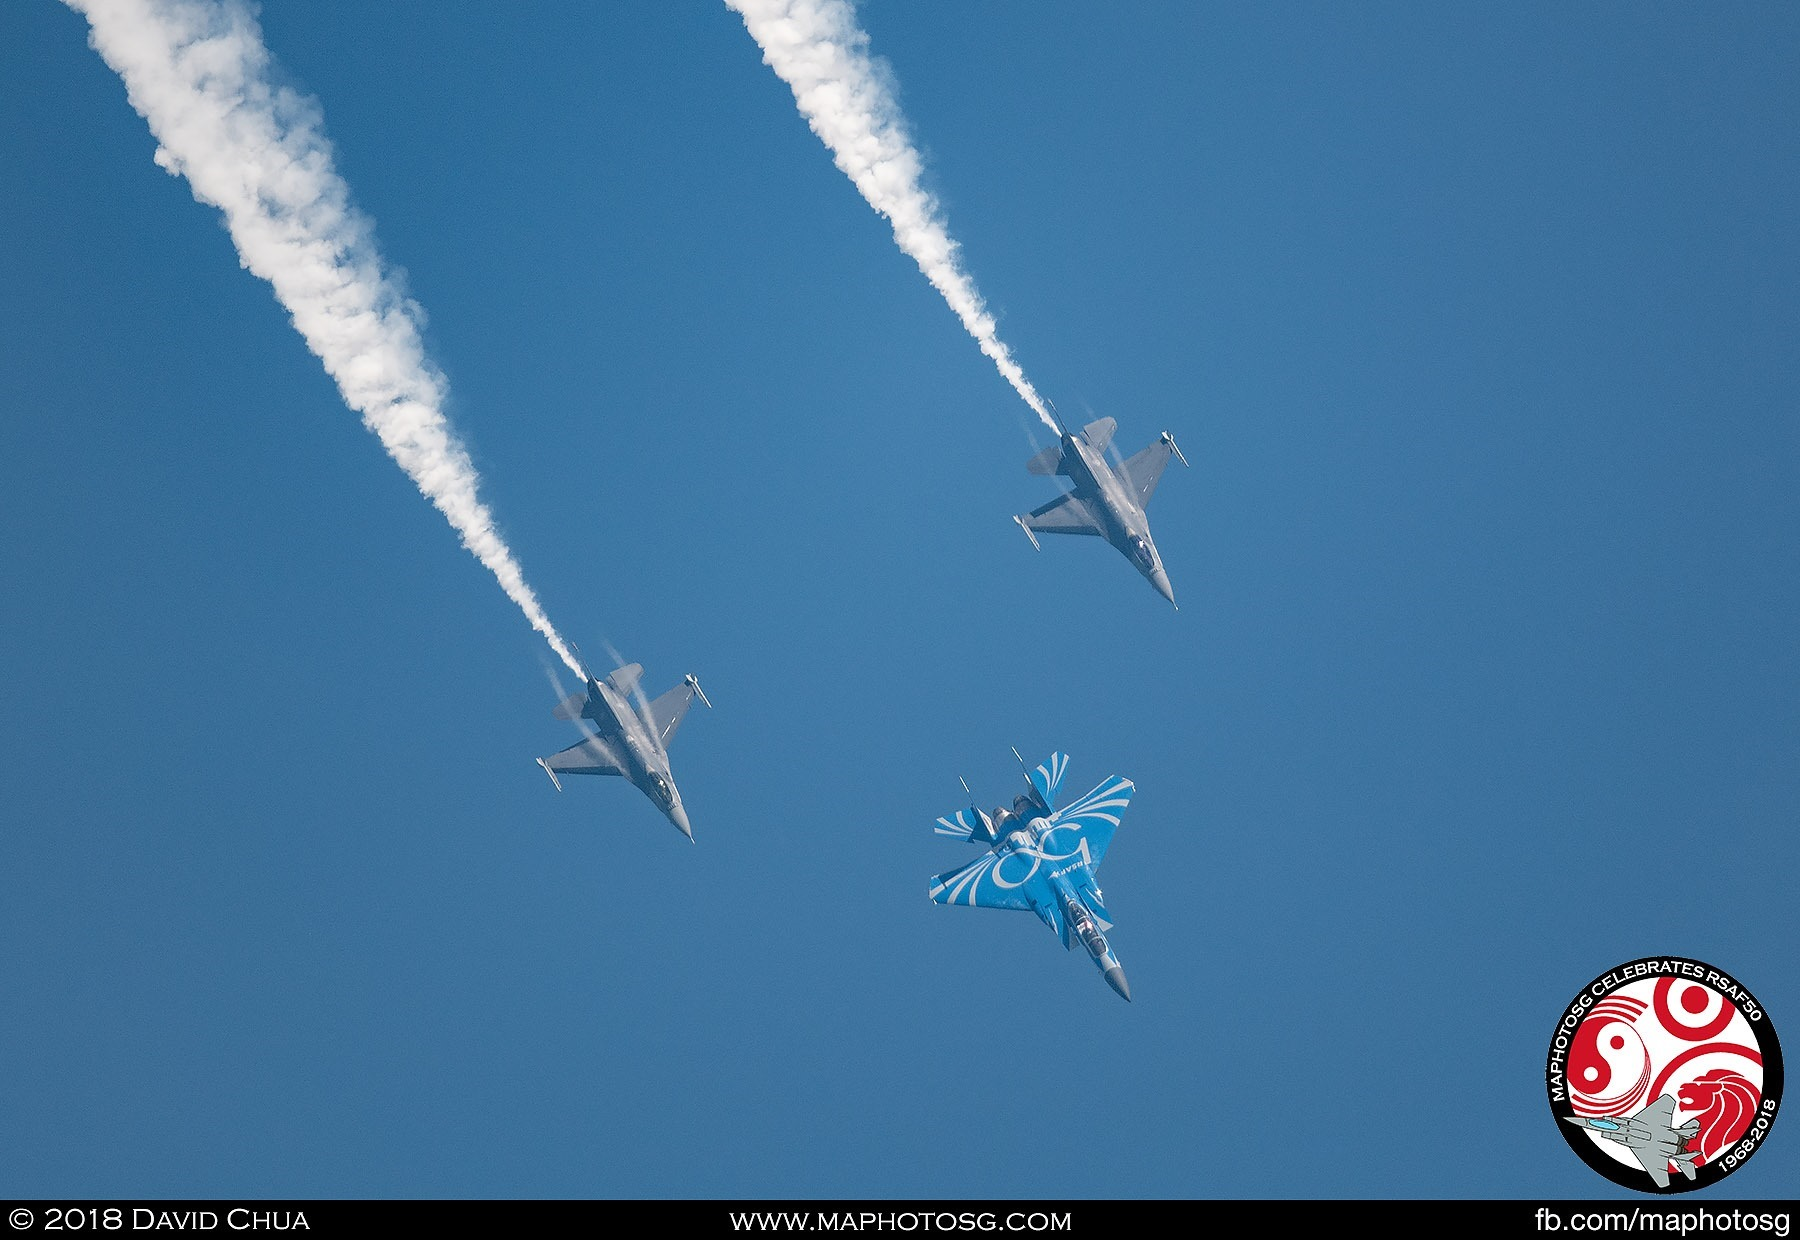 Vertical Loop - The three aircraft pull up in Arrowhead Formation executing a loop.